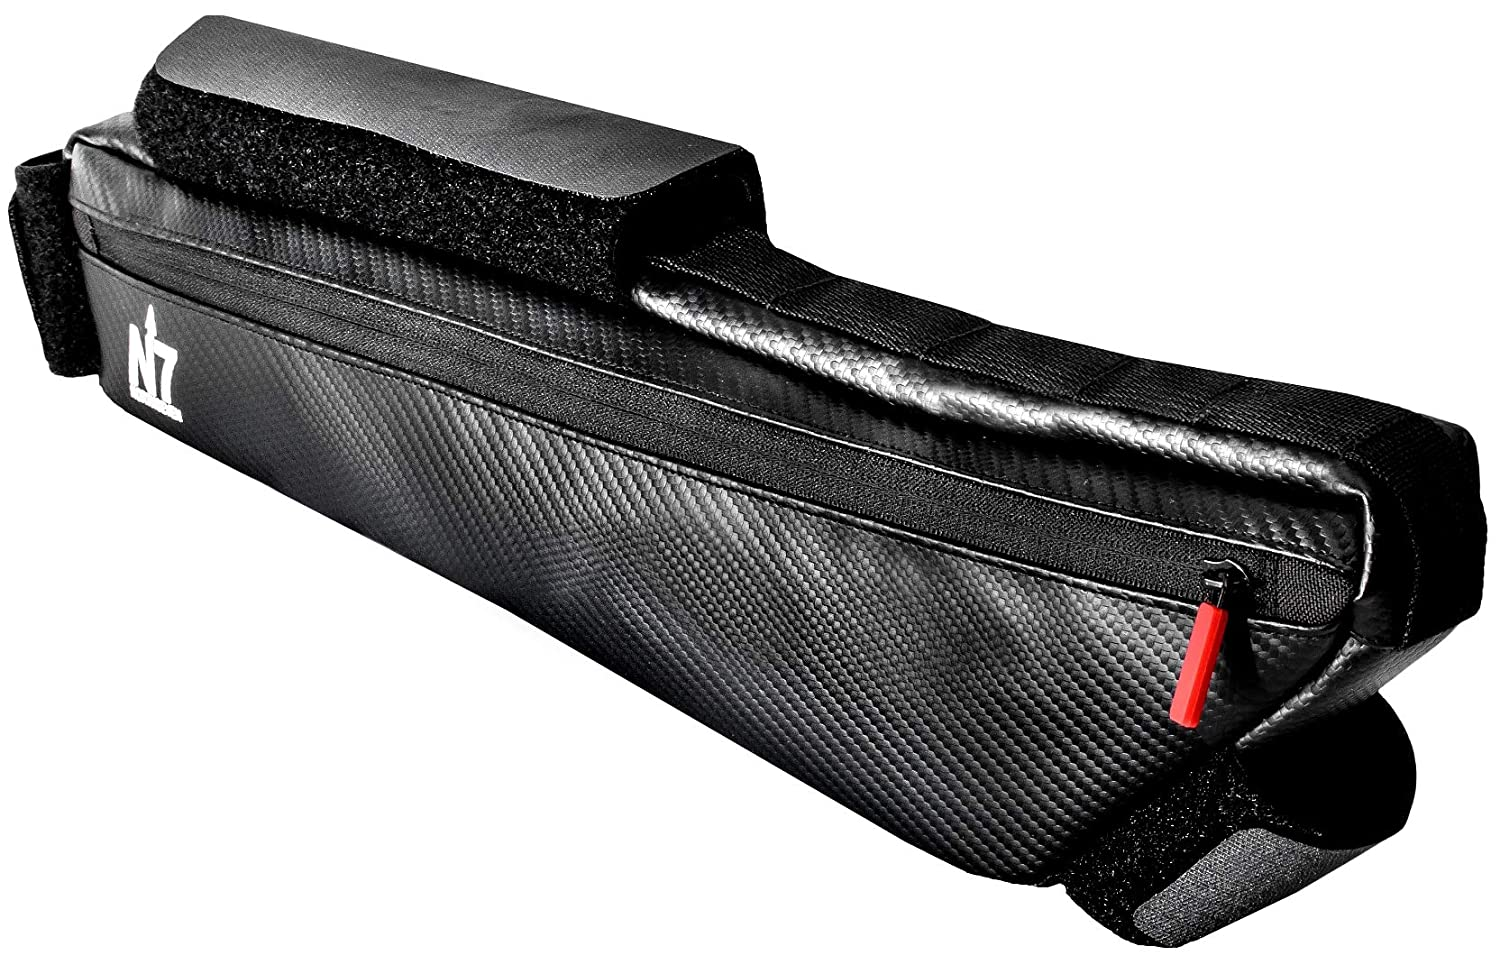 Northseven 3L Carbon XL Frame Bag – 100 Waterproof Lightweight for Bikepacking Adjustable Non-Scratch Velcro Design for MTB and Road Cycling